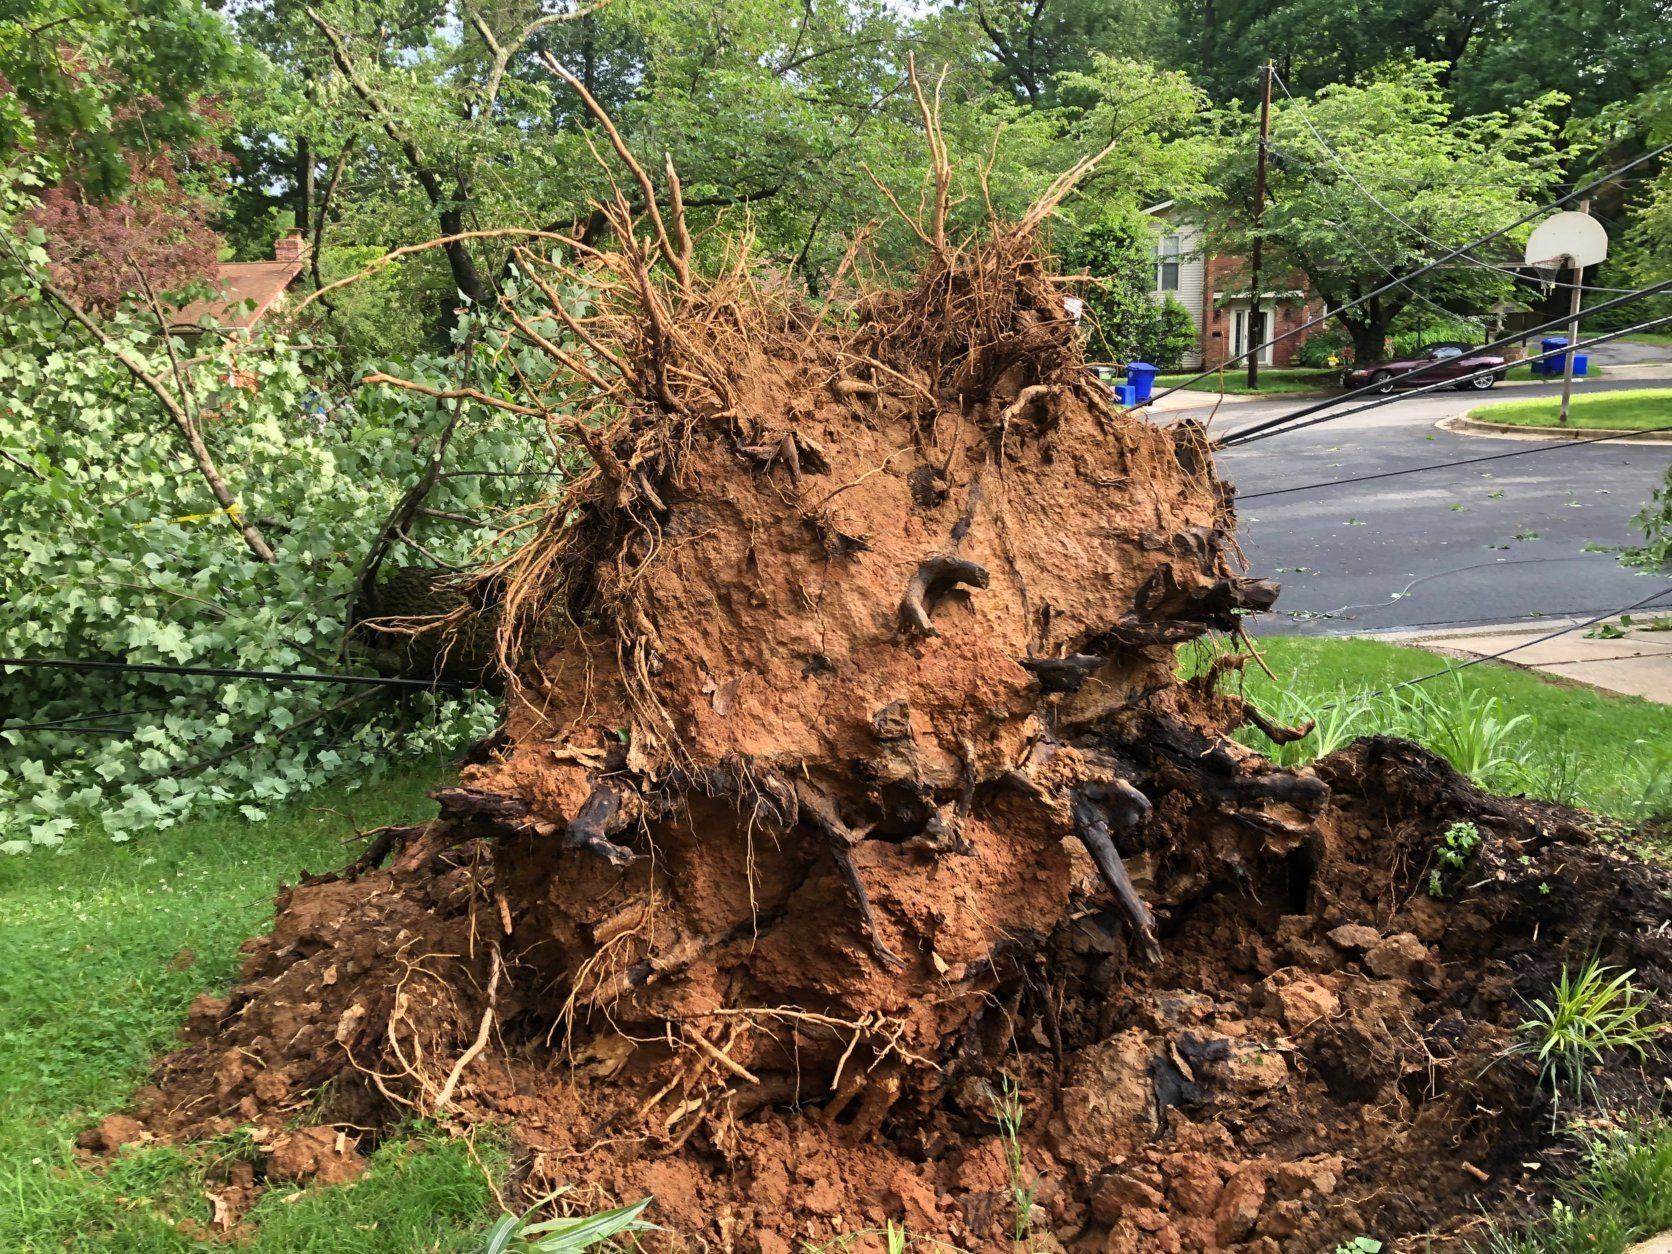 A tree falls in a Rockville, Maryland, neighborhood after a storm on Thursday, May 23, 2019. (WTOP/Mike Murillo)